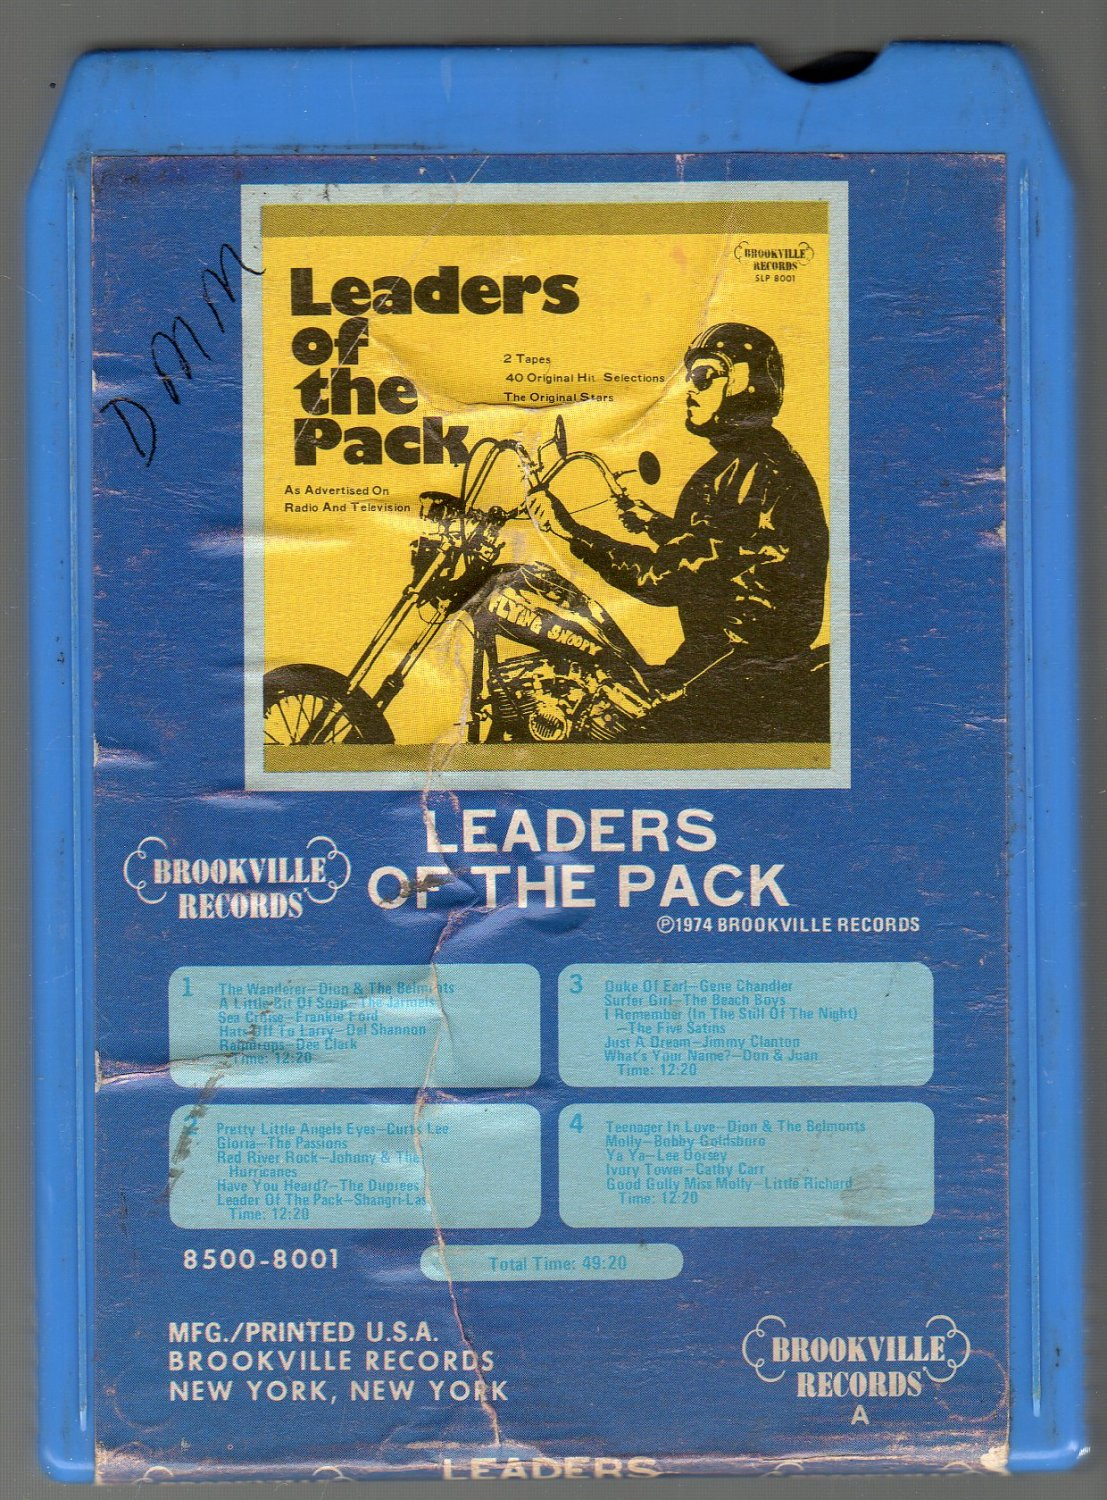 Leaders Of The Pack - Various Rock Artist Part 1 8-track tape